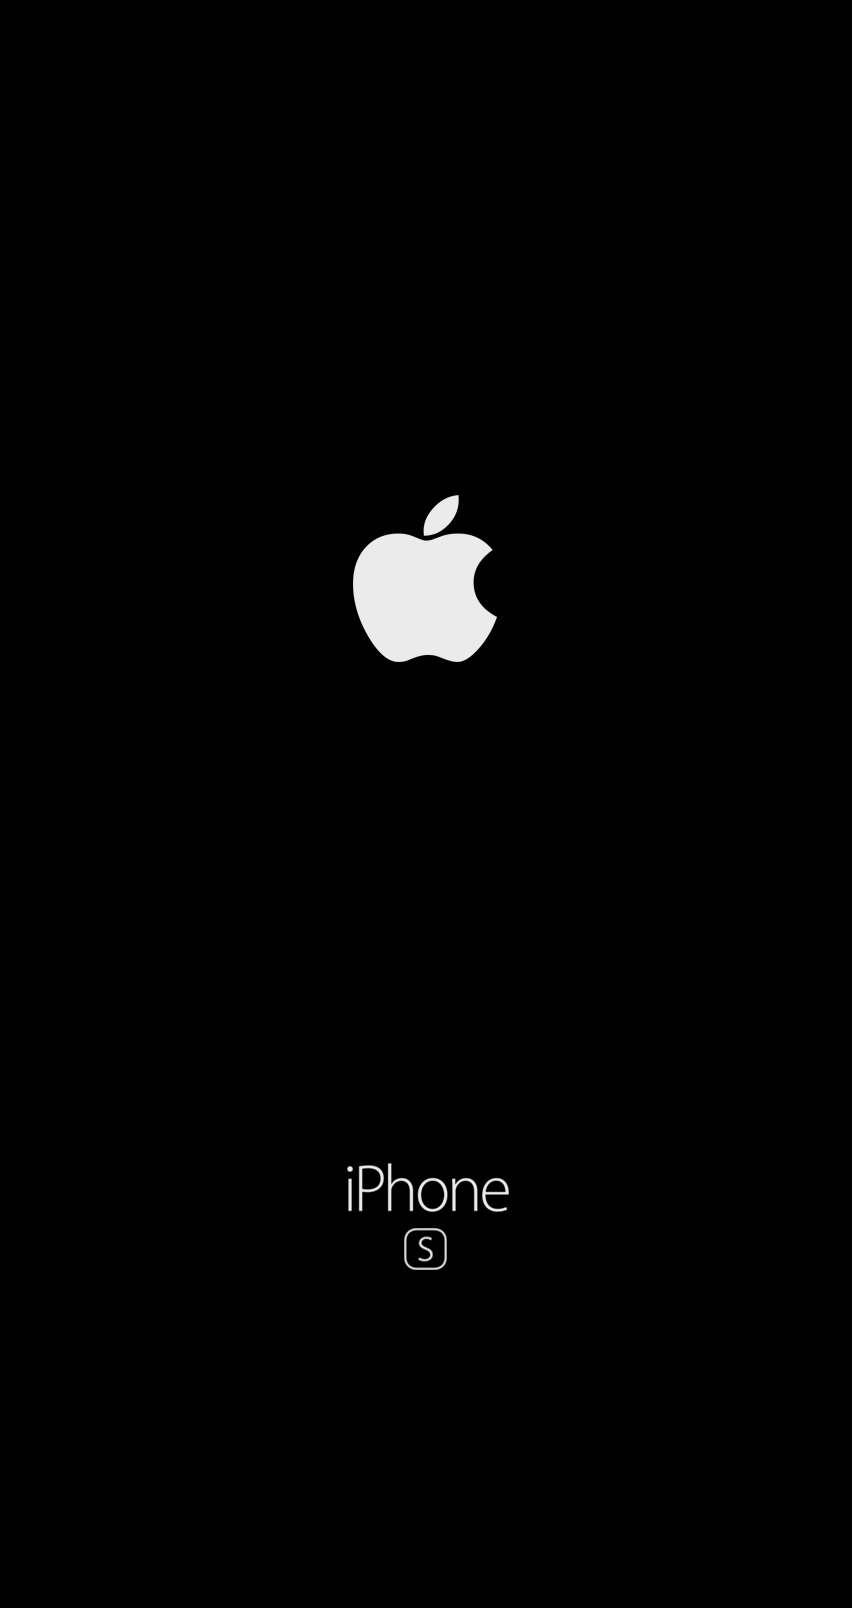 on sale d4cbe 36f8a Iphone 6s Wallpaper black logo apple fond d'écran noir | IPHONE in ...